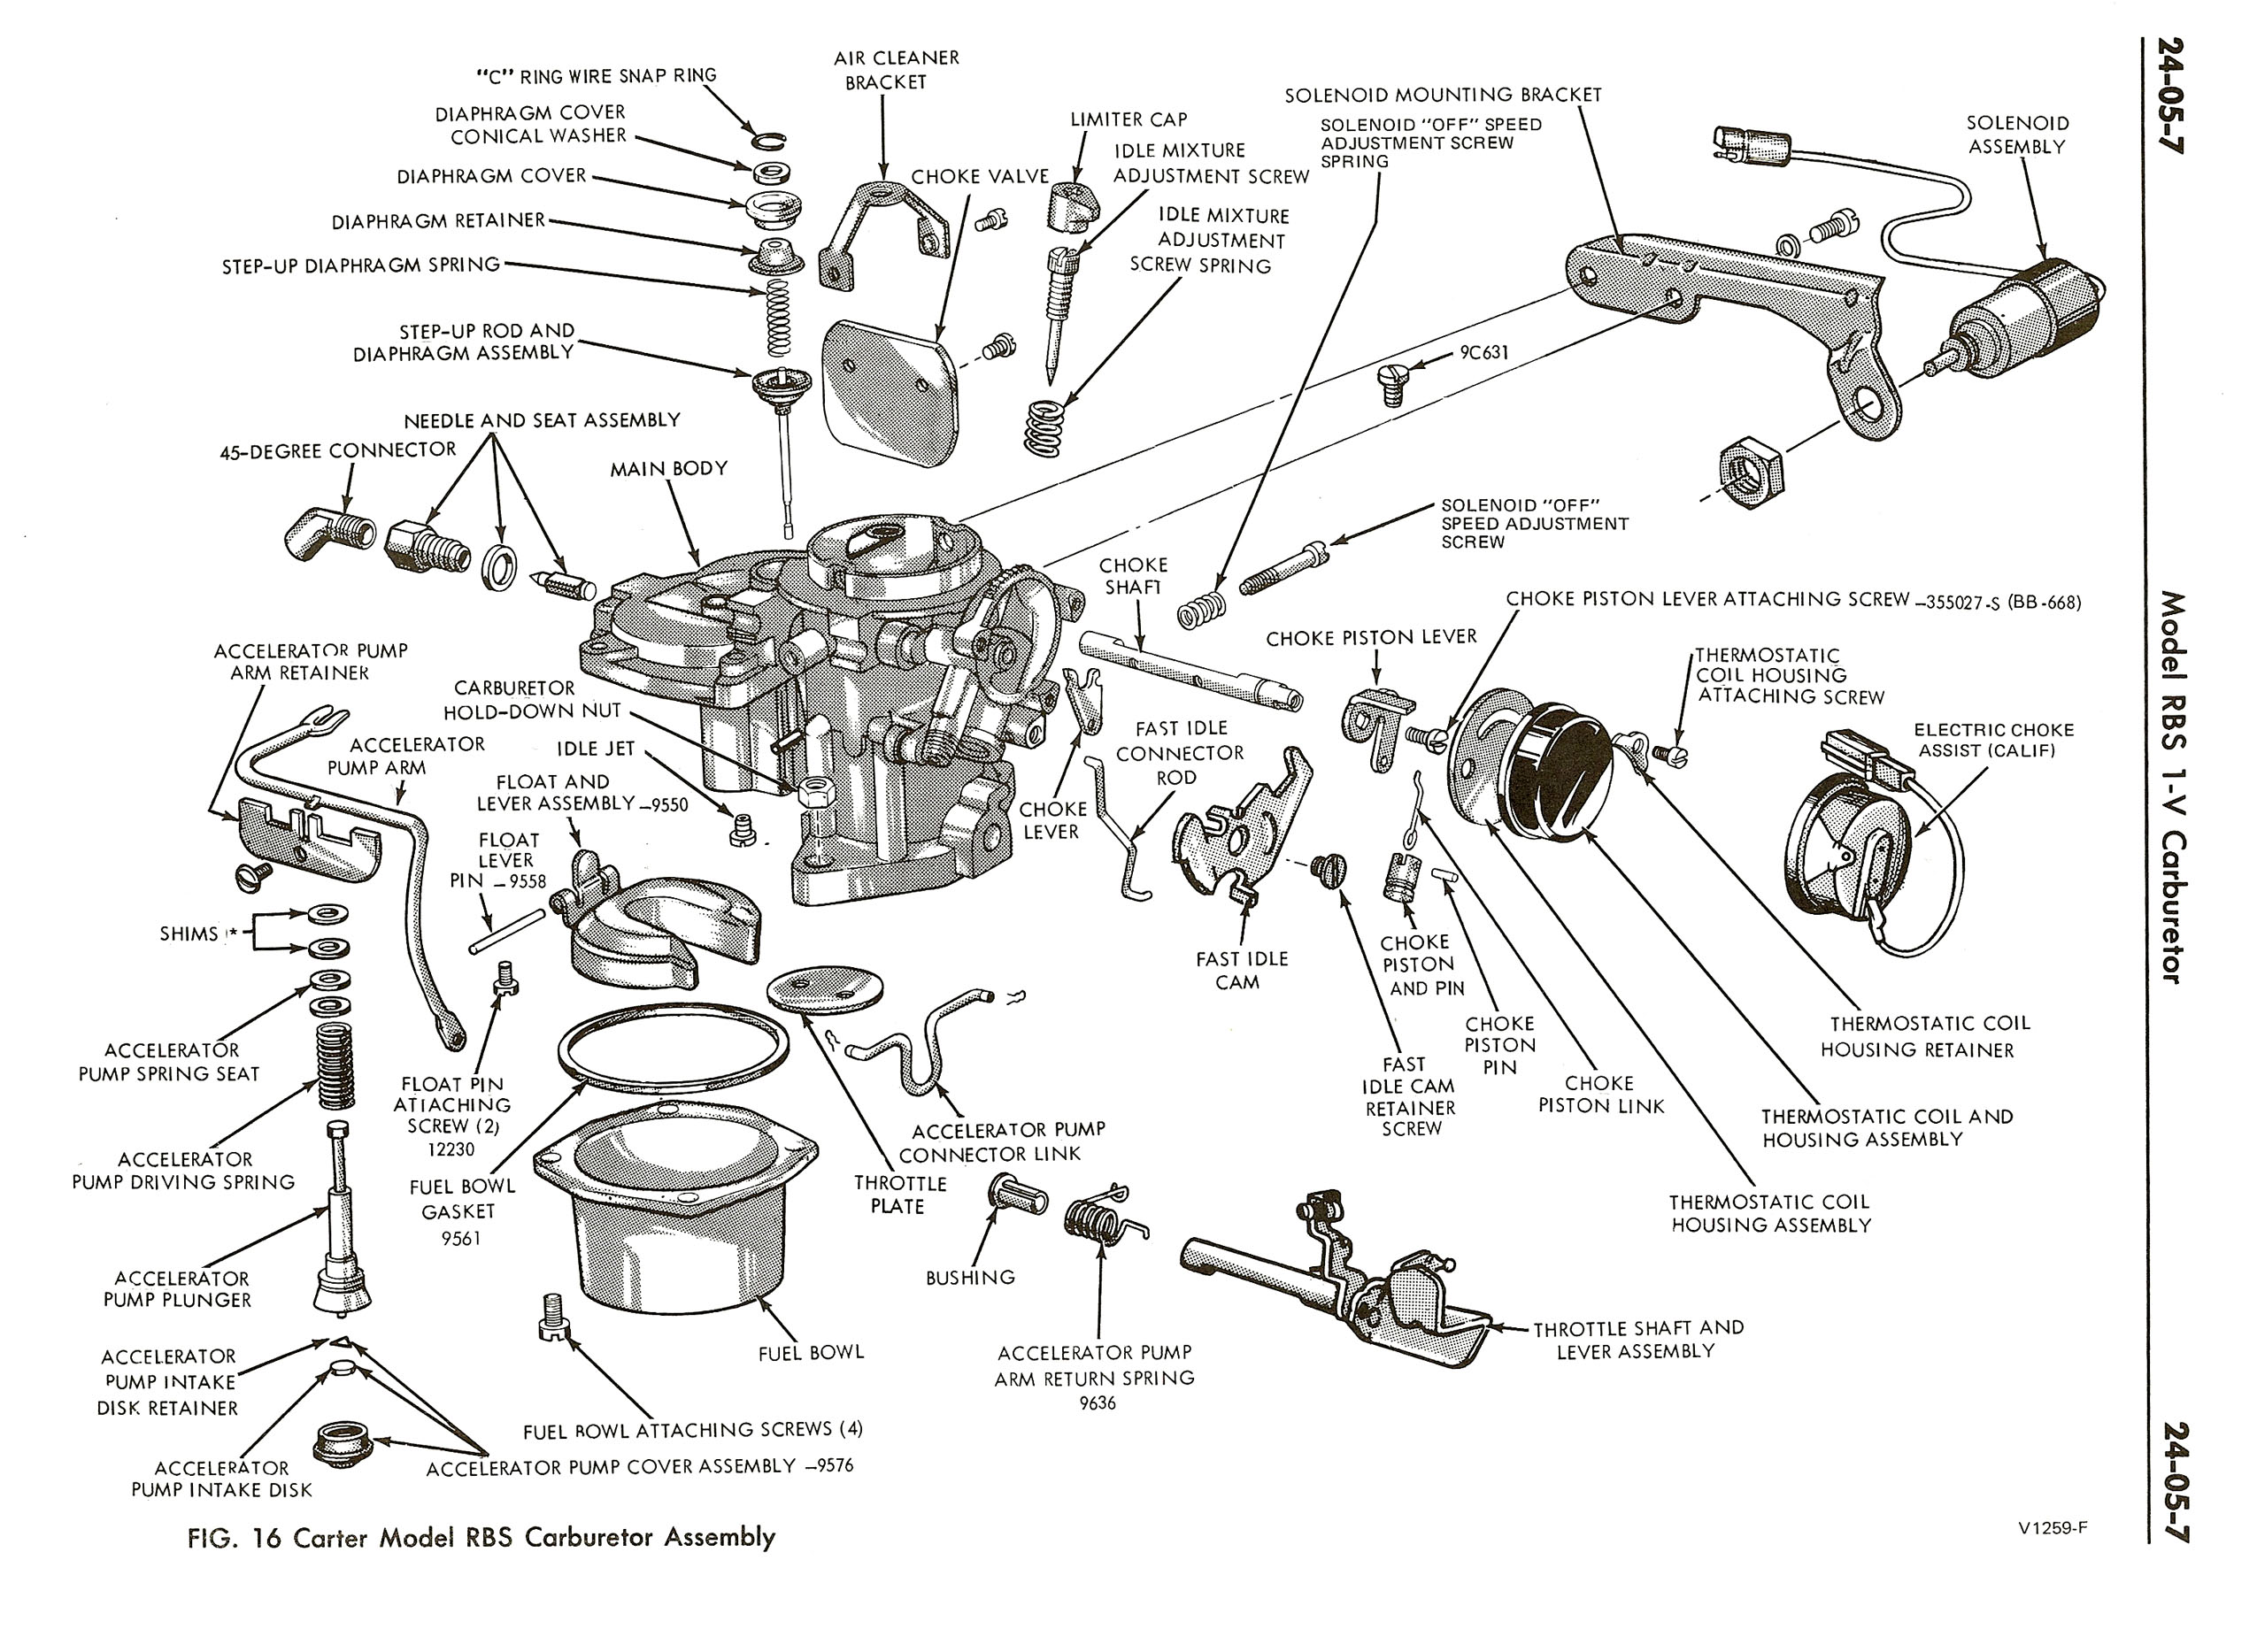 1974 Ford Carter RBS Carburetor Manual / 1974FordRBS0007.jpg